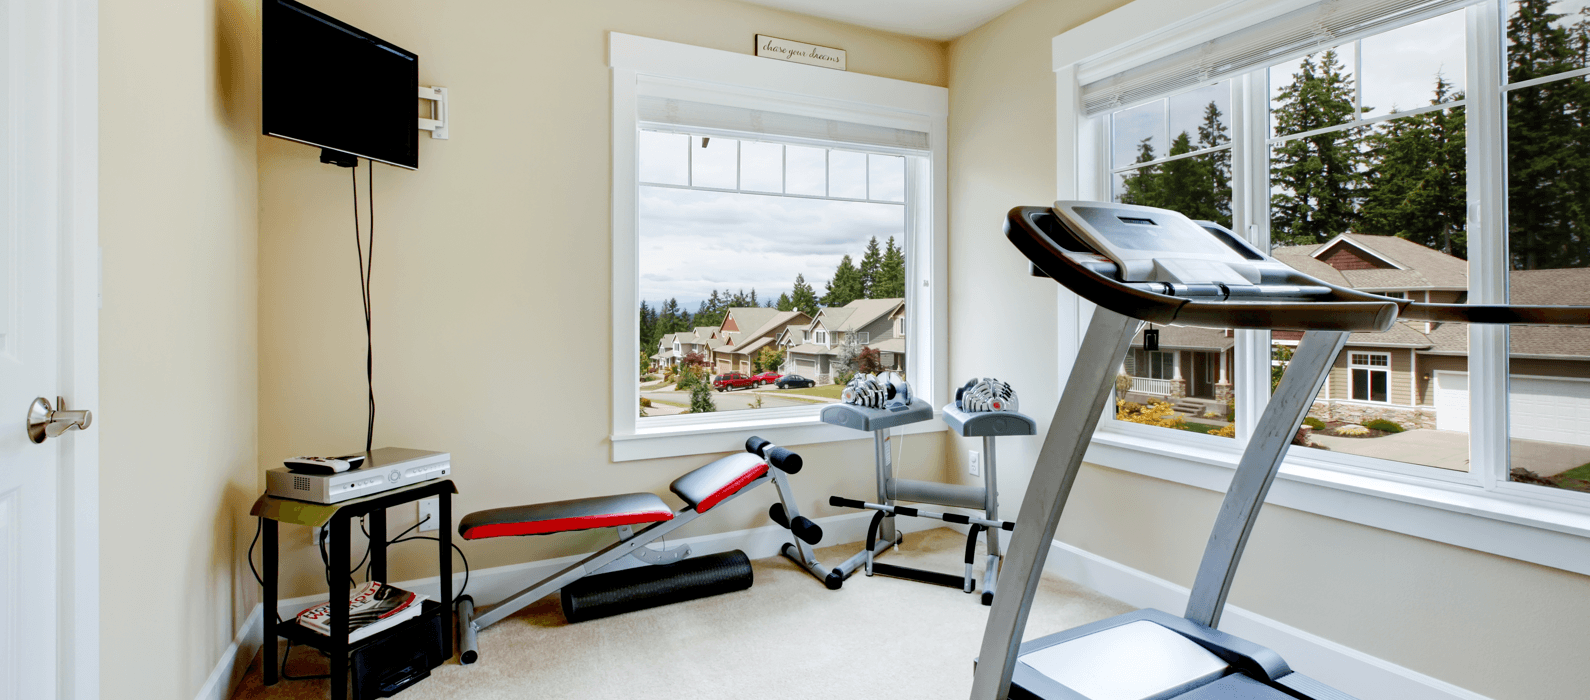 Home Gym Ideas You Can't Live Without Featured Image